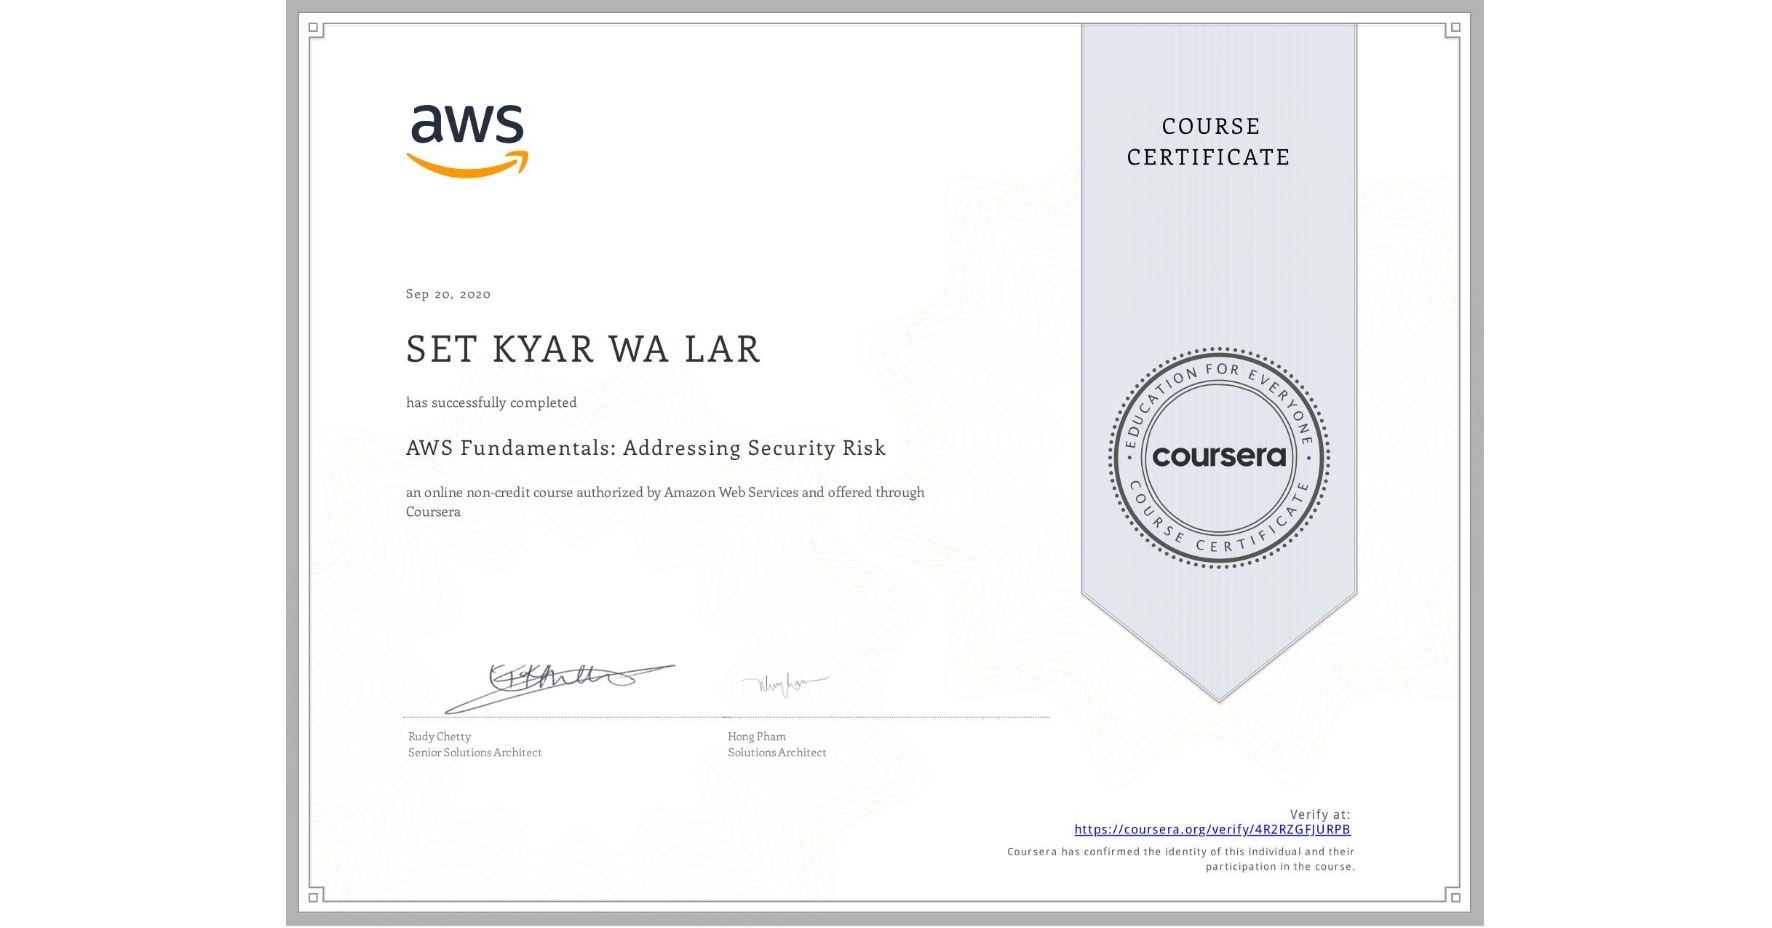 View certificate for  SET KYAR WA LAR, AWS Fundamentals: Addressing Security Risk, an online non-credit course authorized by Amazon Web Services and offered through Coursera